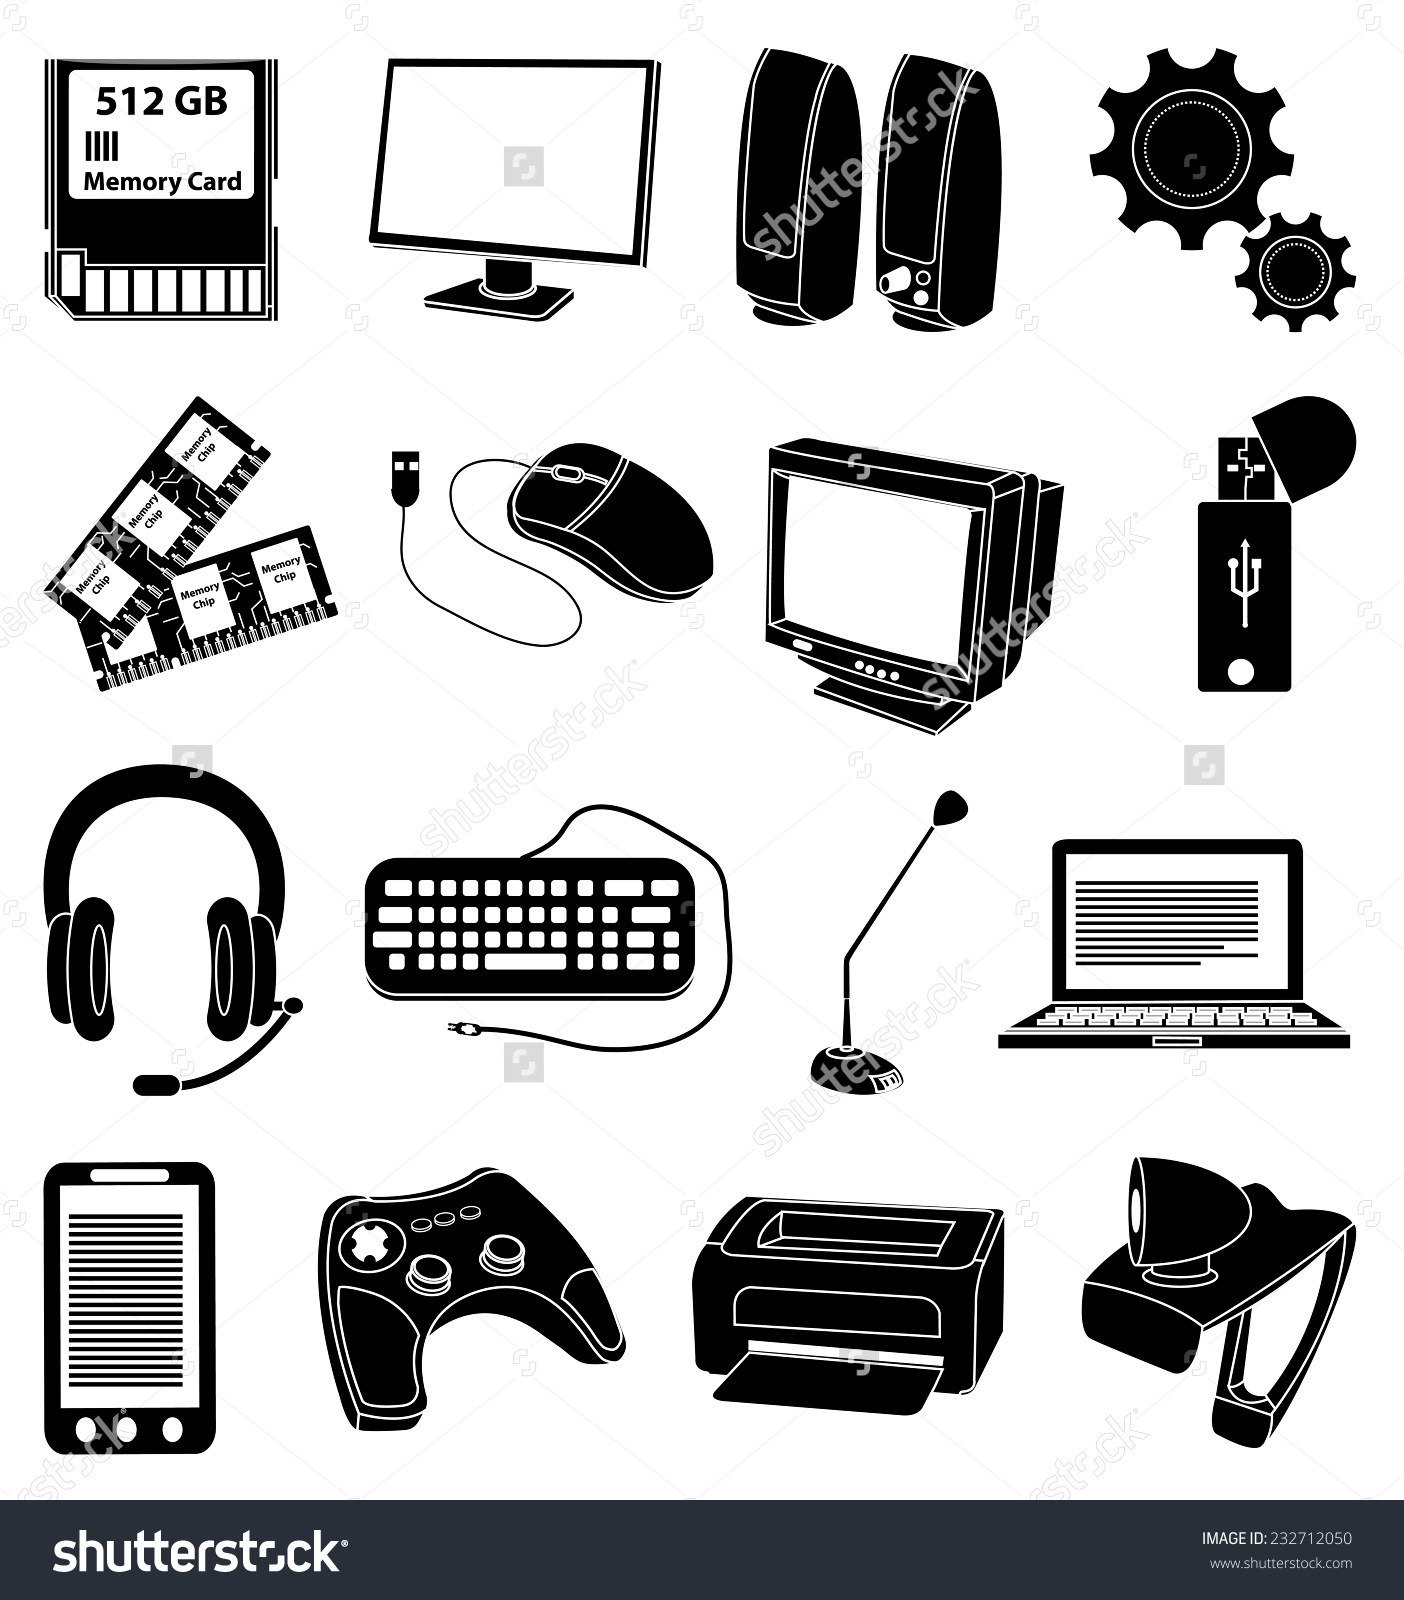 Input and output devices clipart.